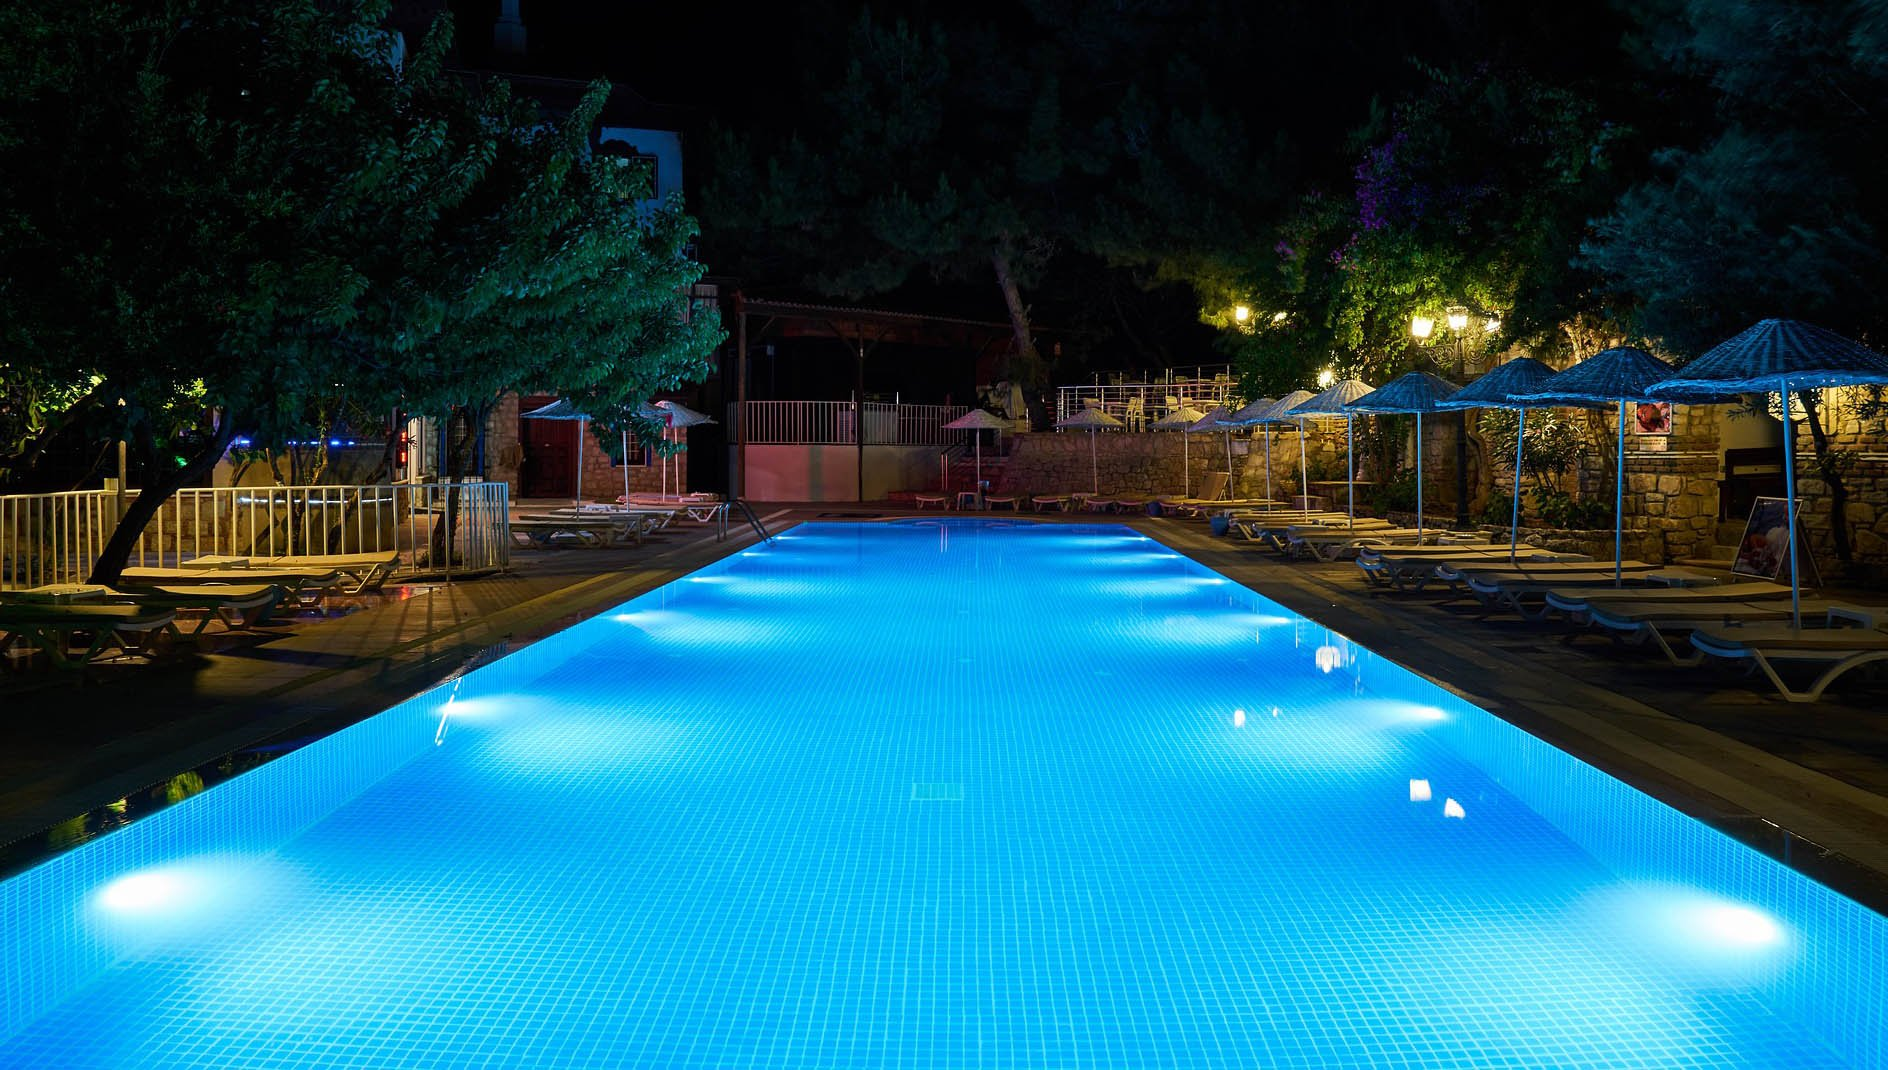 The 11 Best Swimming Pool Lights For 2021 (and 2022)